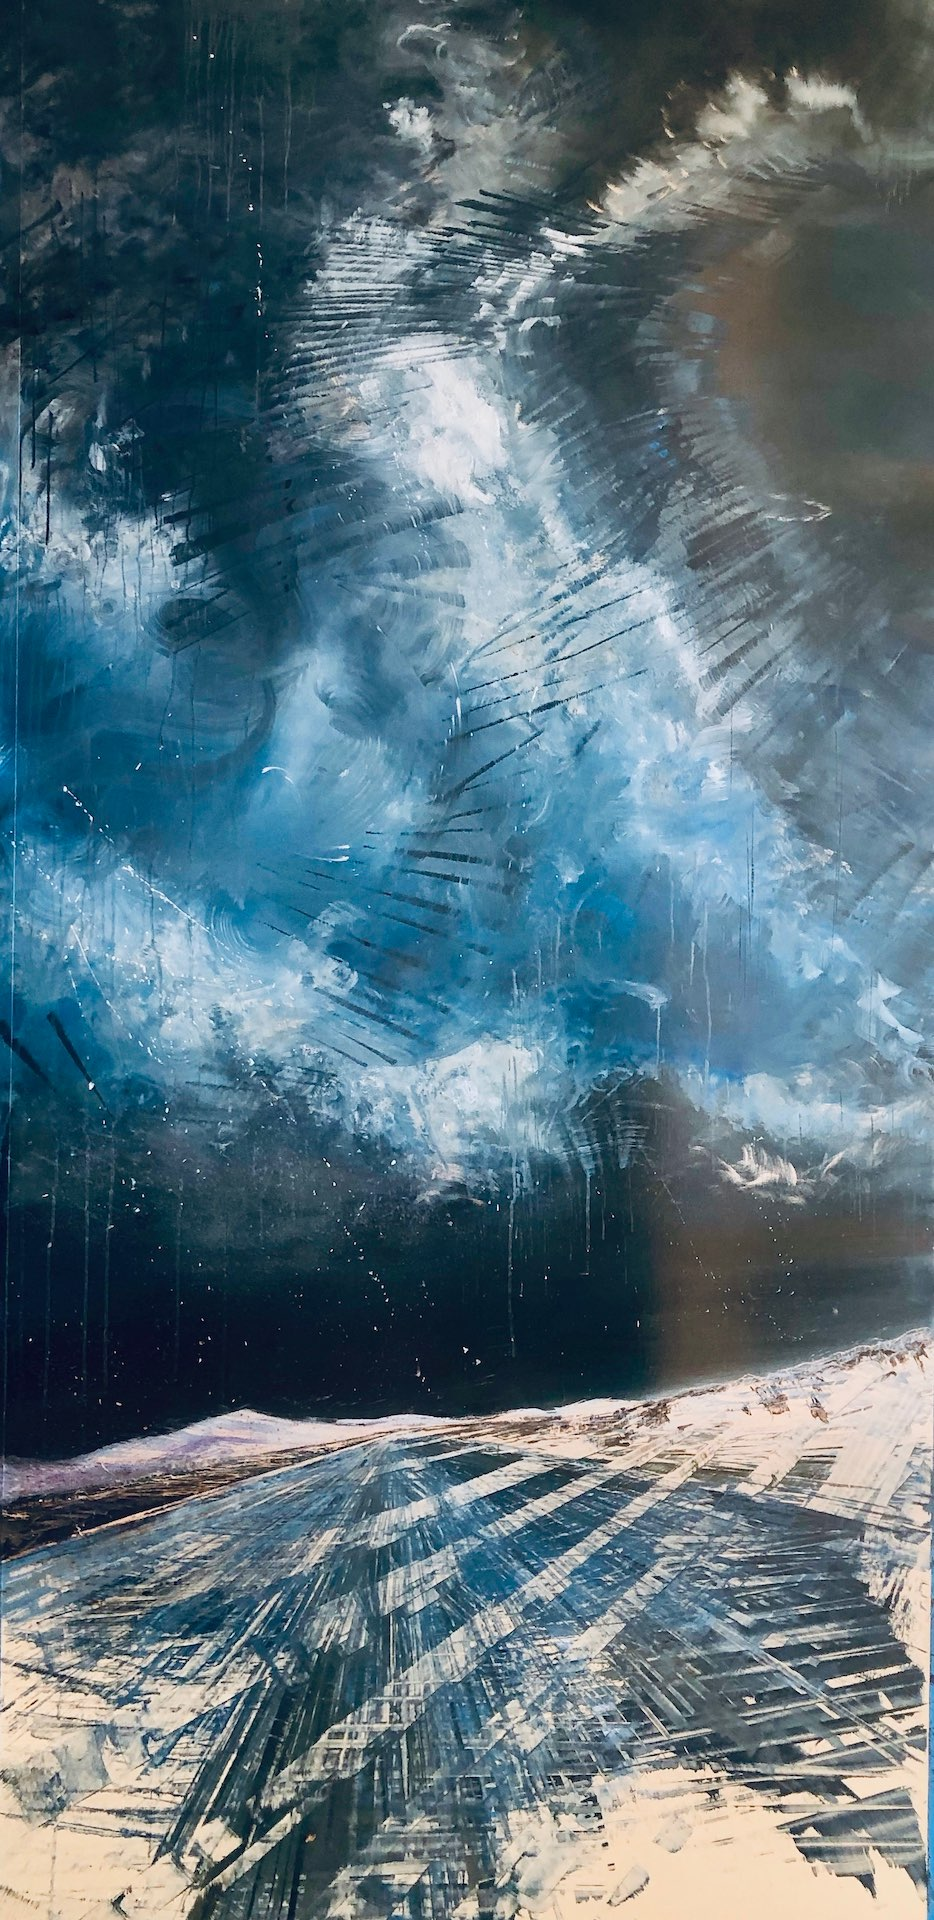 Celestial Rhapsody, Contemporary oil painting on metal of a super storm in Park City, Utah, Fine Art by Cynthia McLoughlin